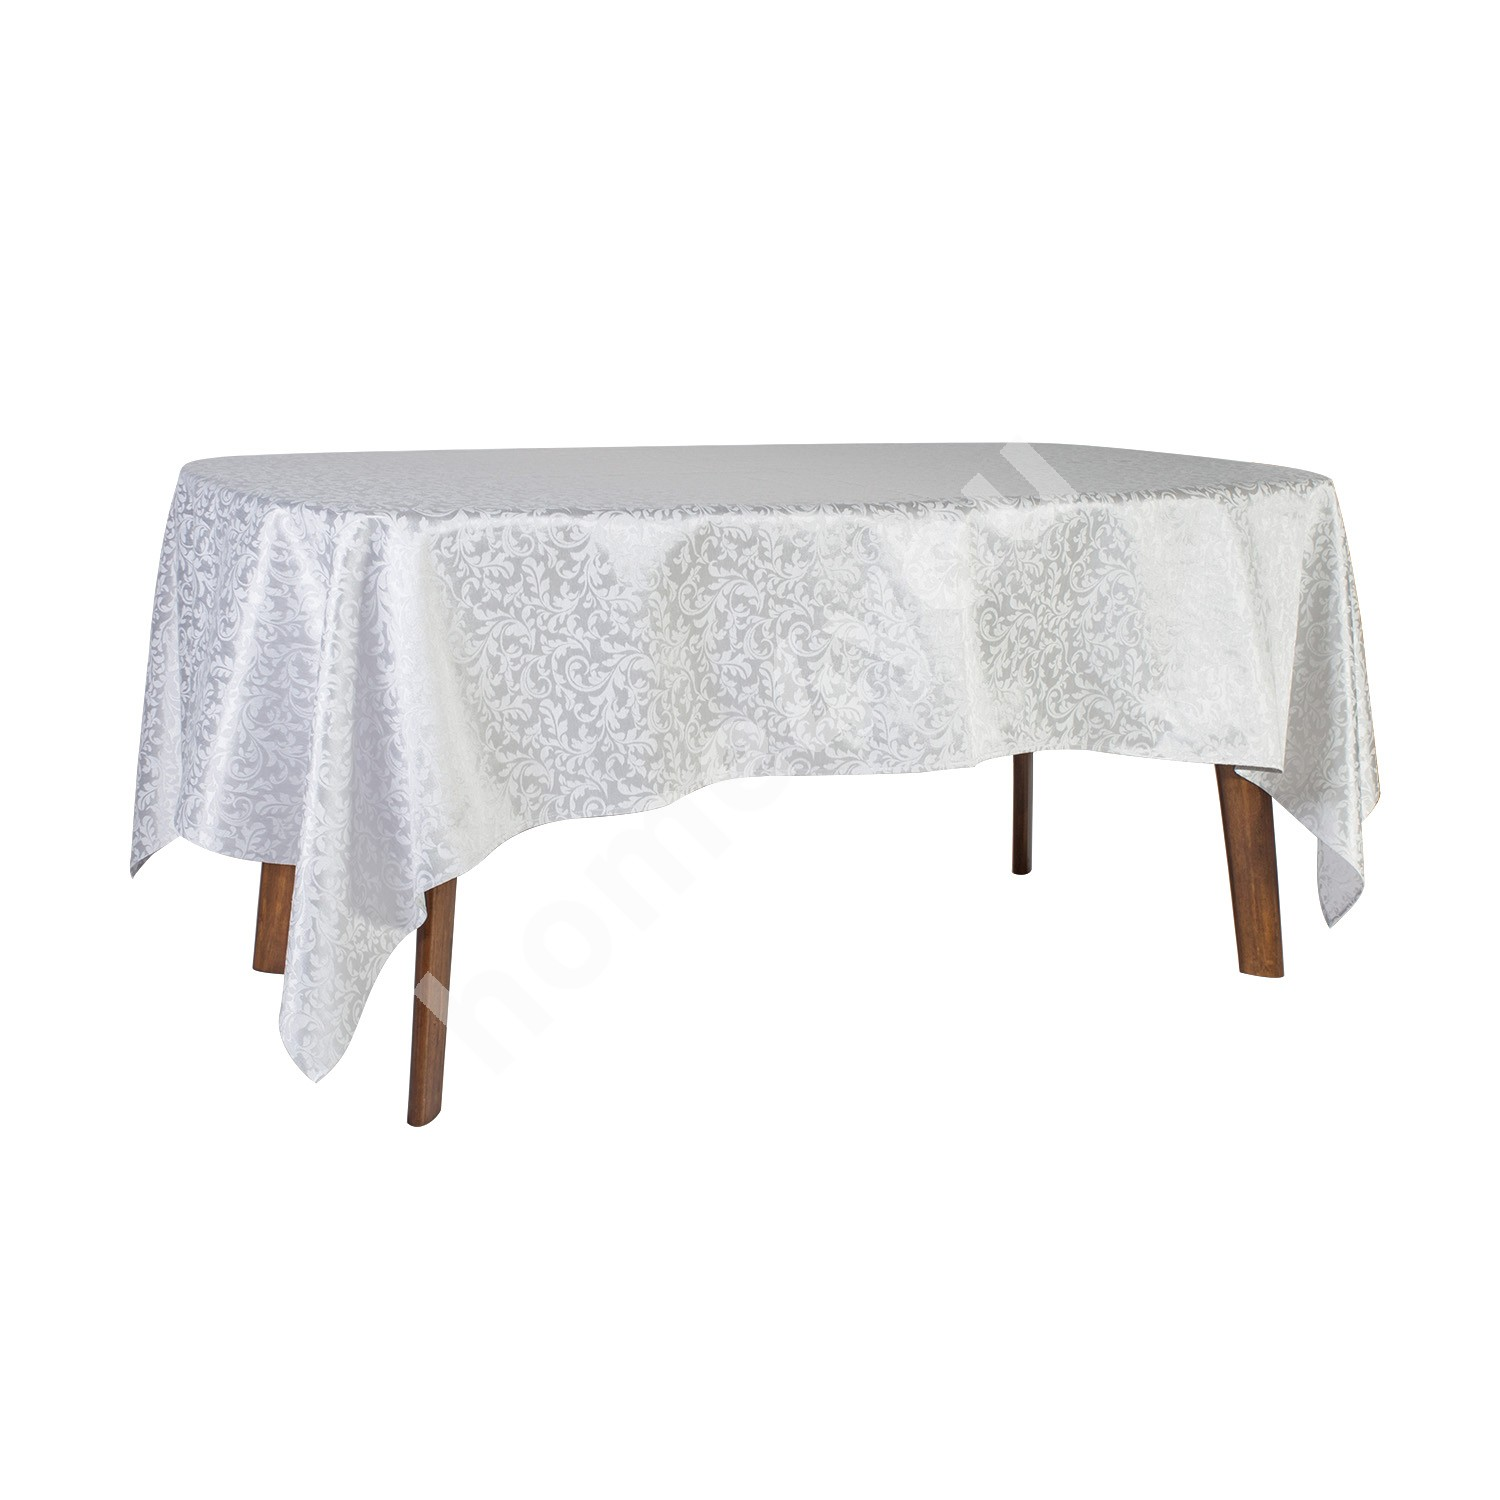 Tablecloth GOLD & SILVER 150x250cm, silver leaf motive, 50% cotton, 50% polyester, fabric-180